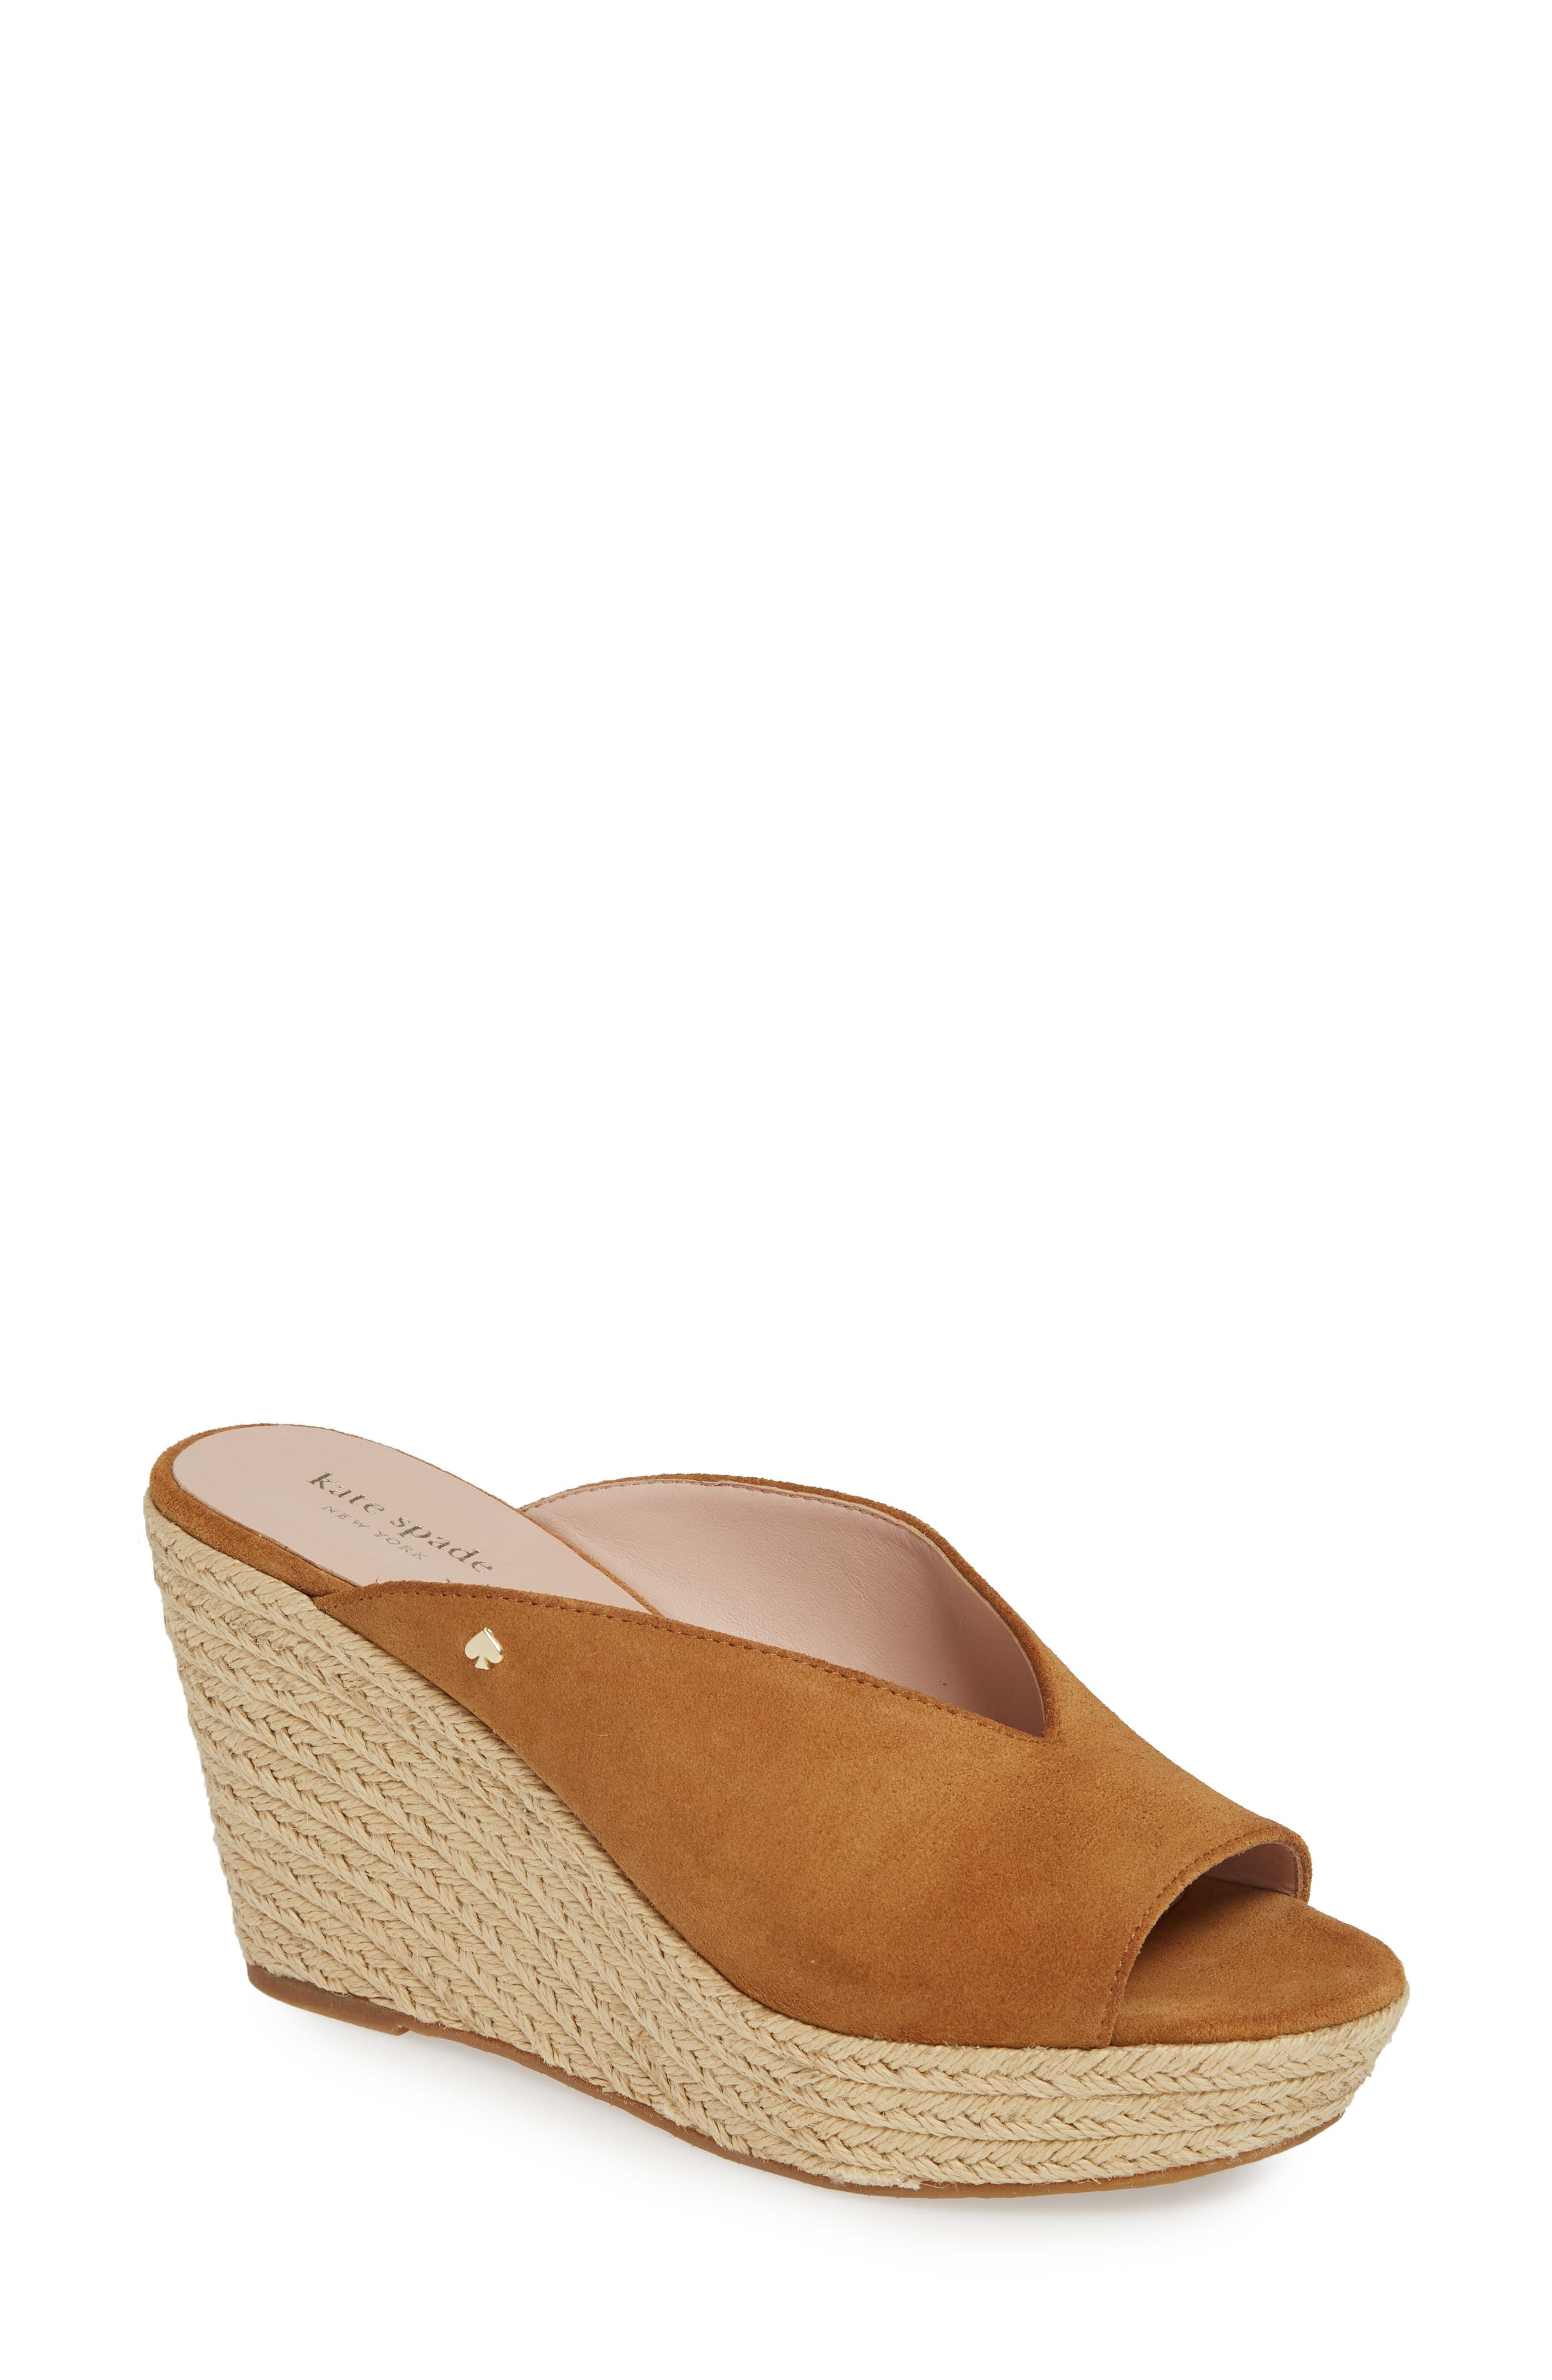 KATE SPADE NEW YORK thea wedge espadrille mule, Main, color, TOAST